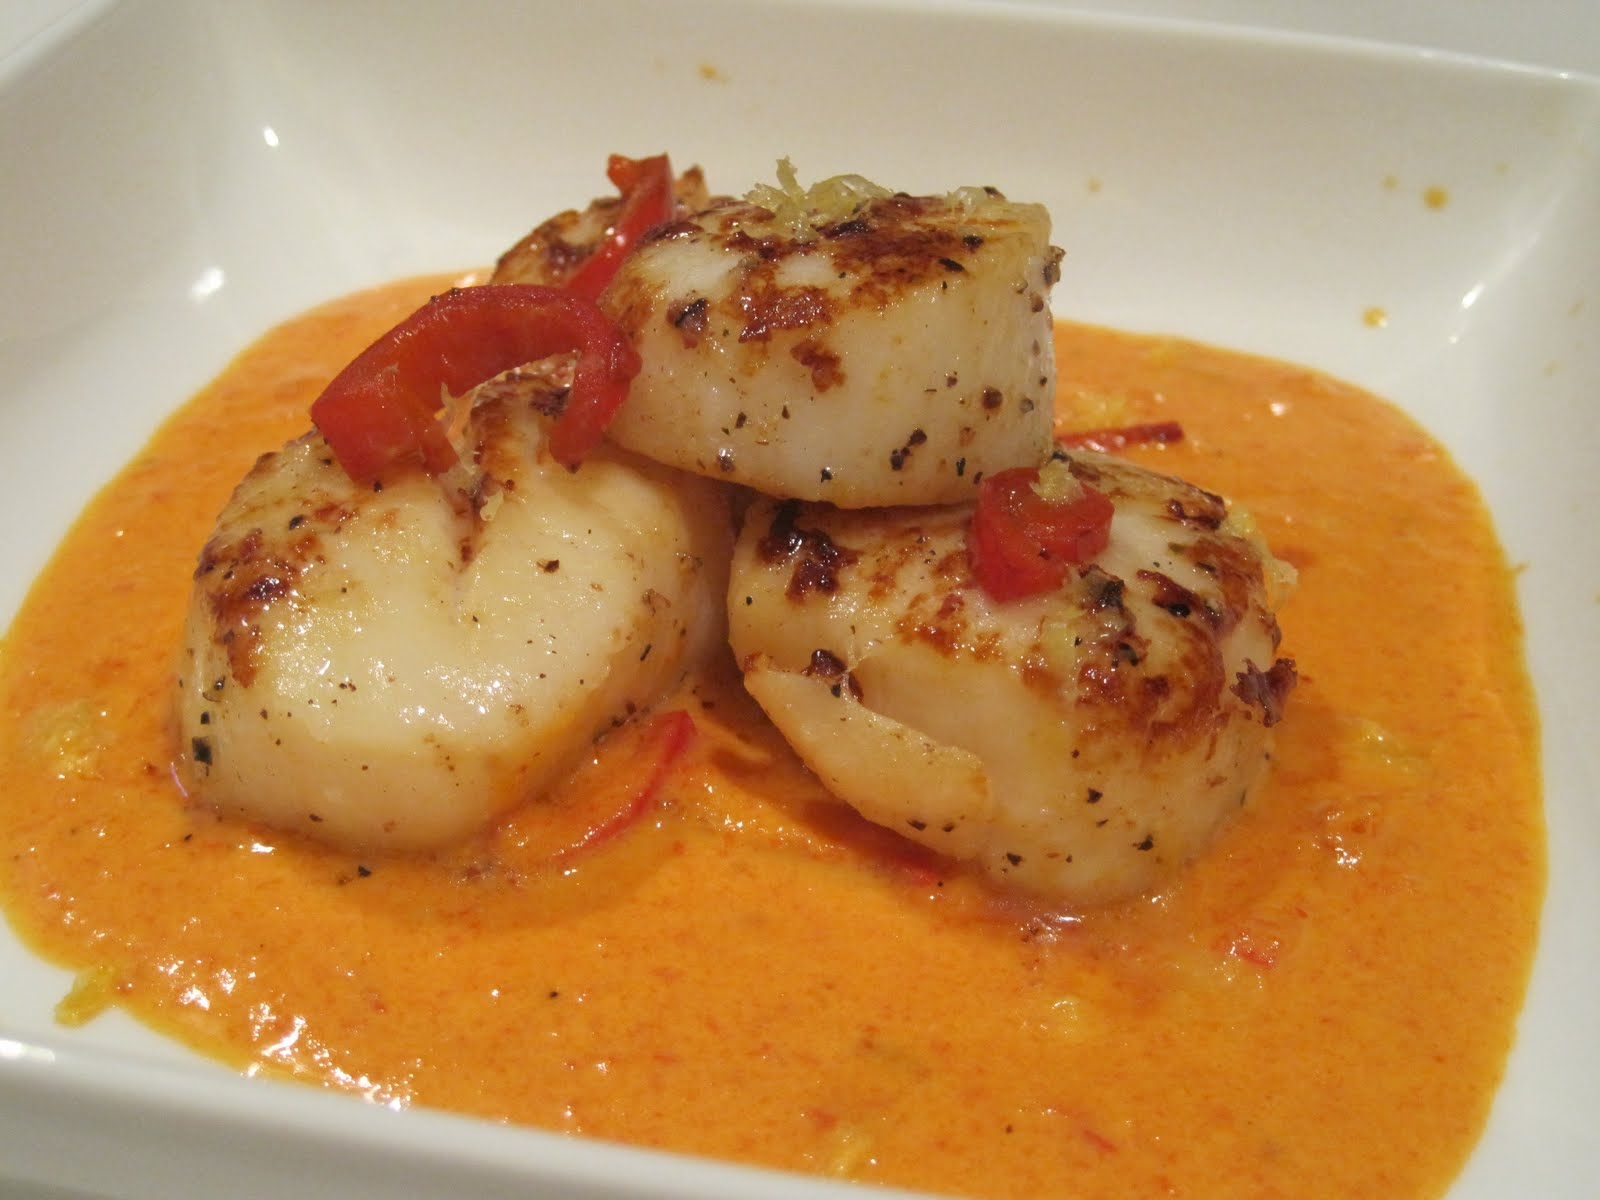 ... these scallops combines red bell peppers with hot peppers to get the